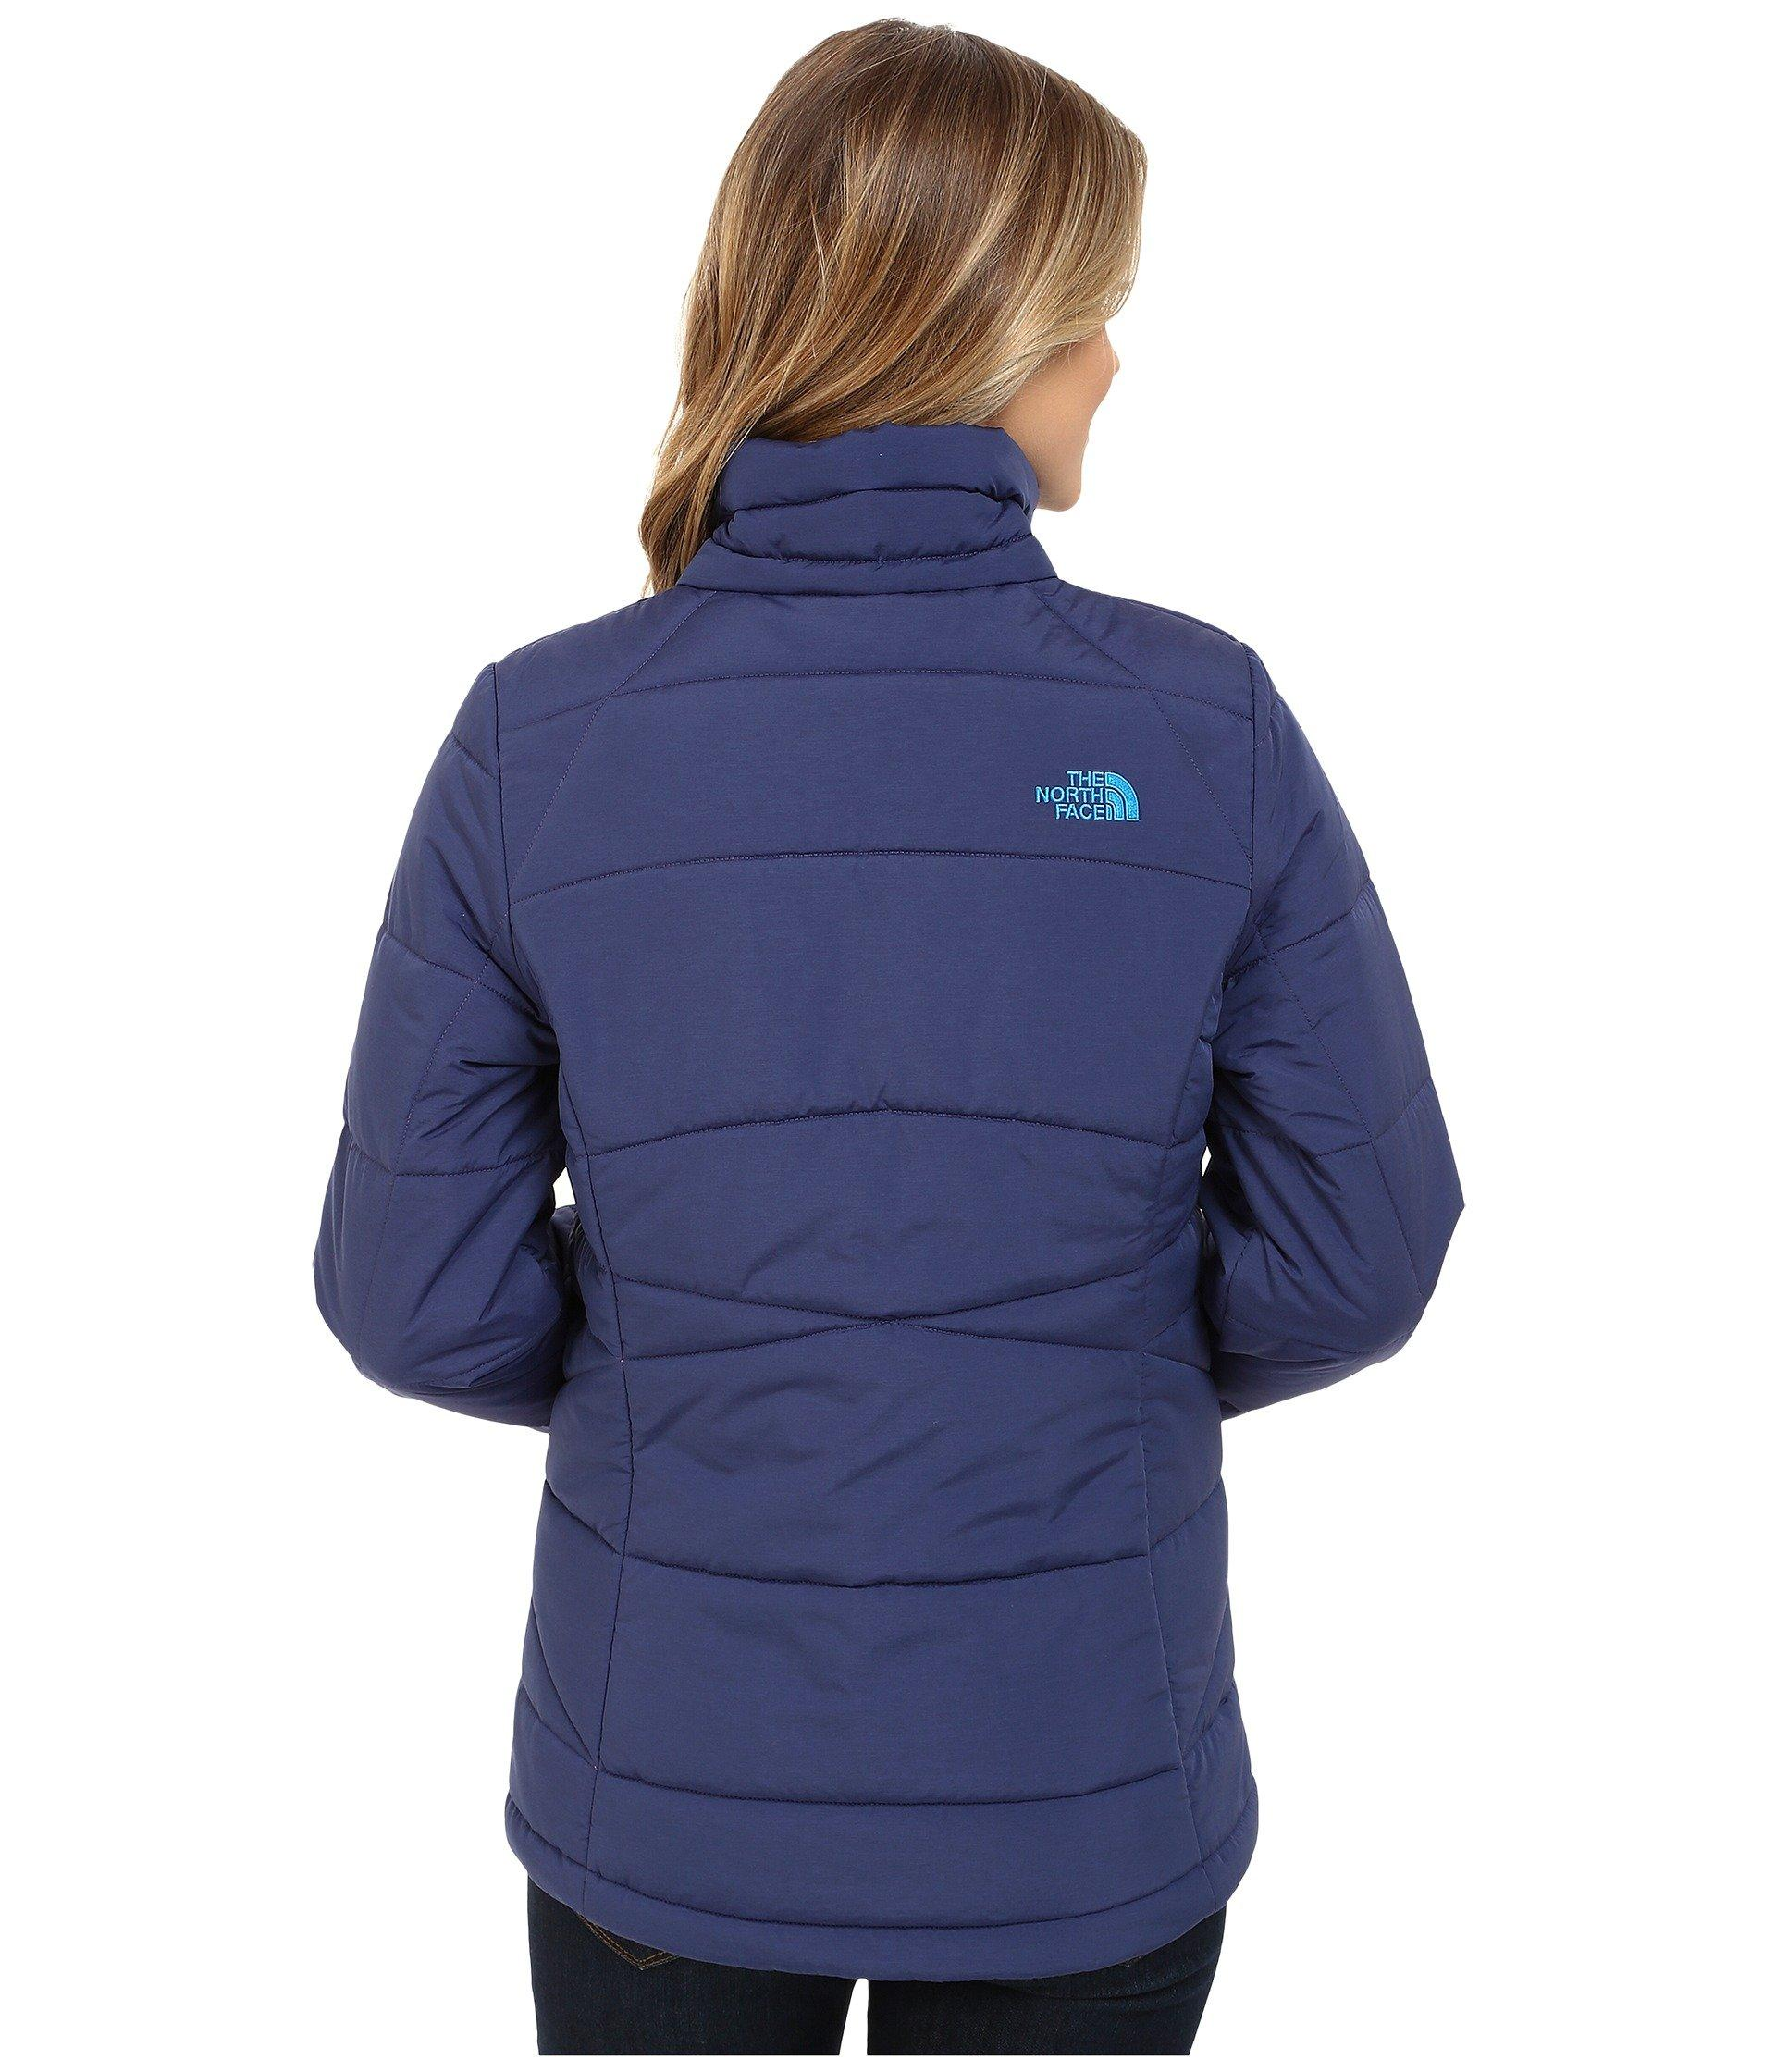 238eb46d51 Lyst - The North Face Roamer Jacket in Blue